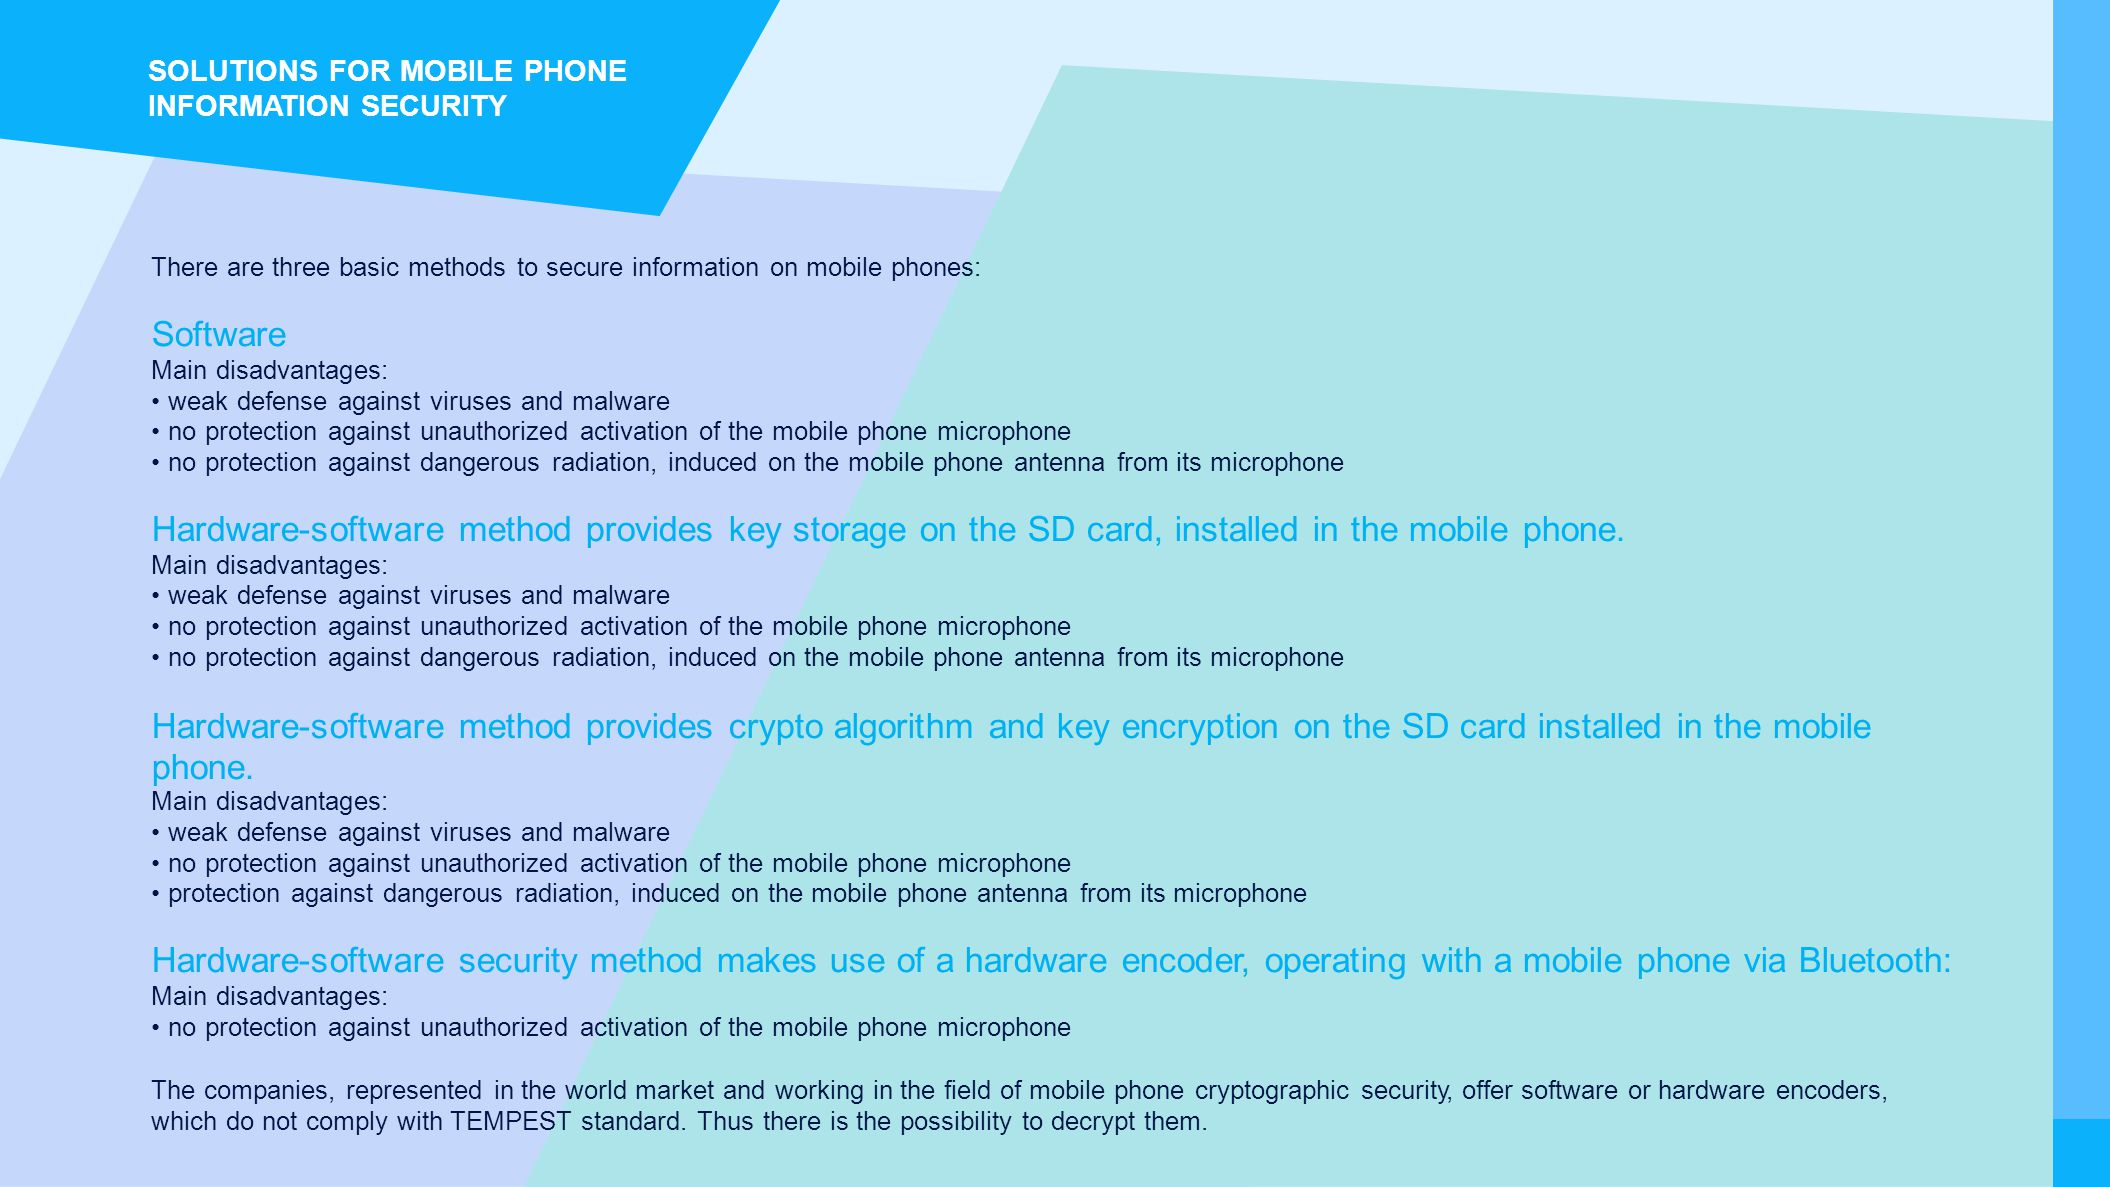 SOLUTIONS FOR MOBILE PHONE INFORMATION SECURITY